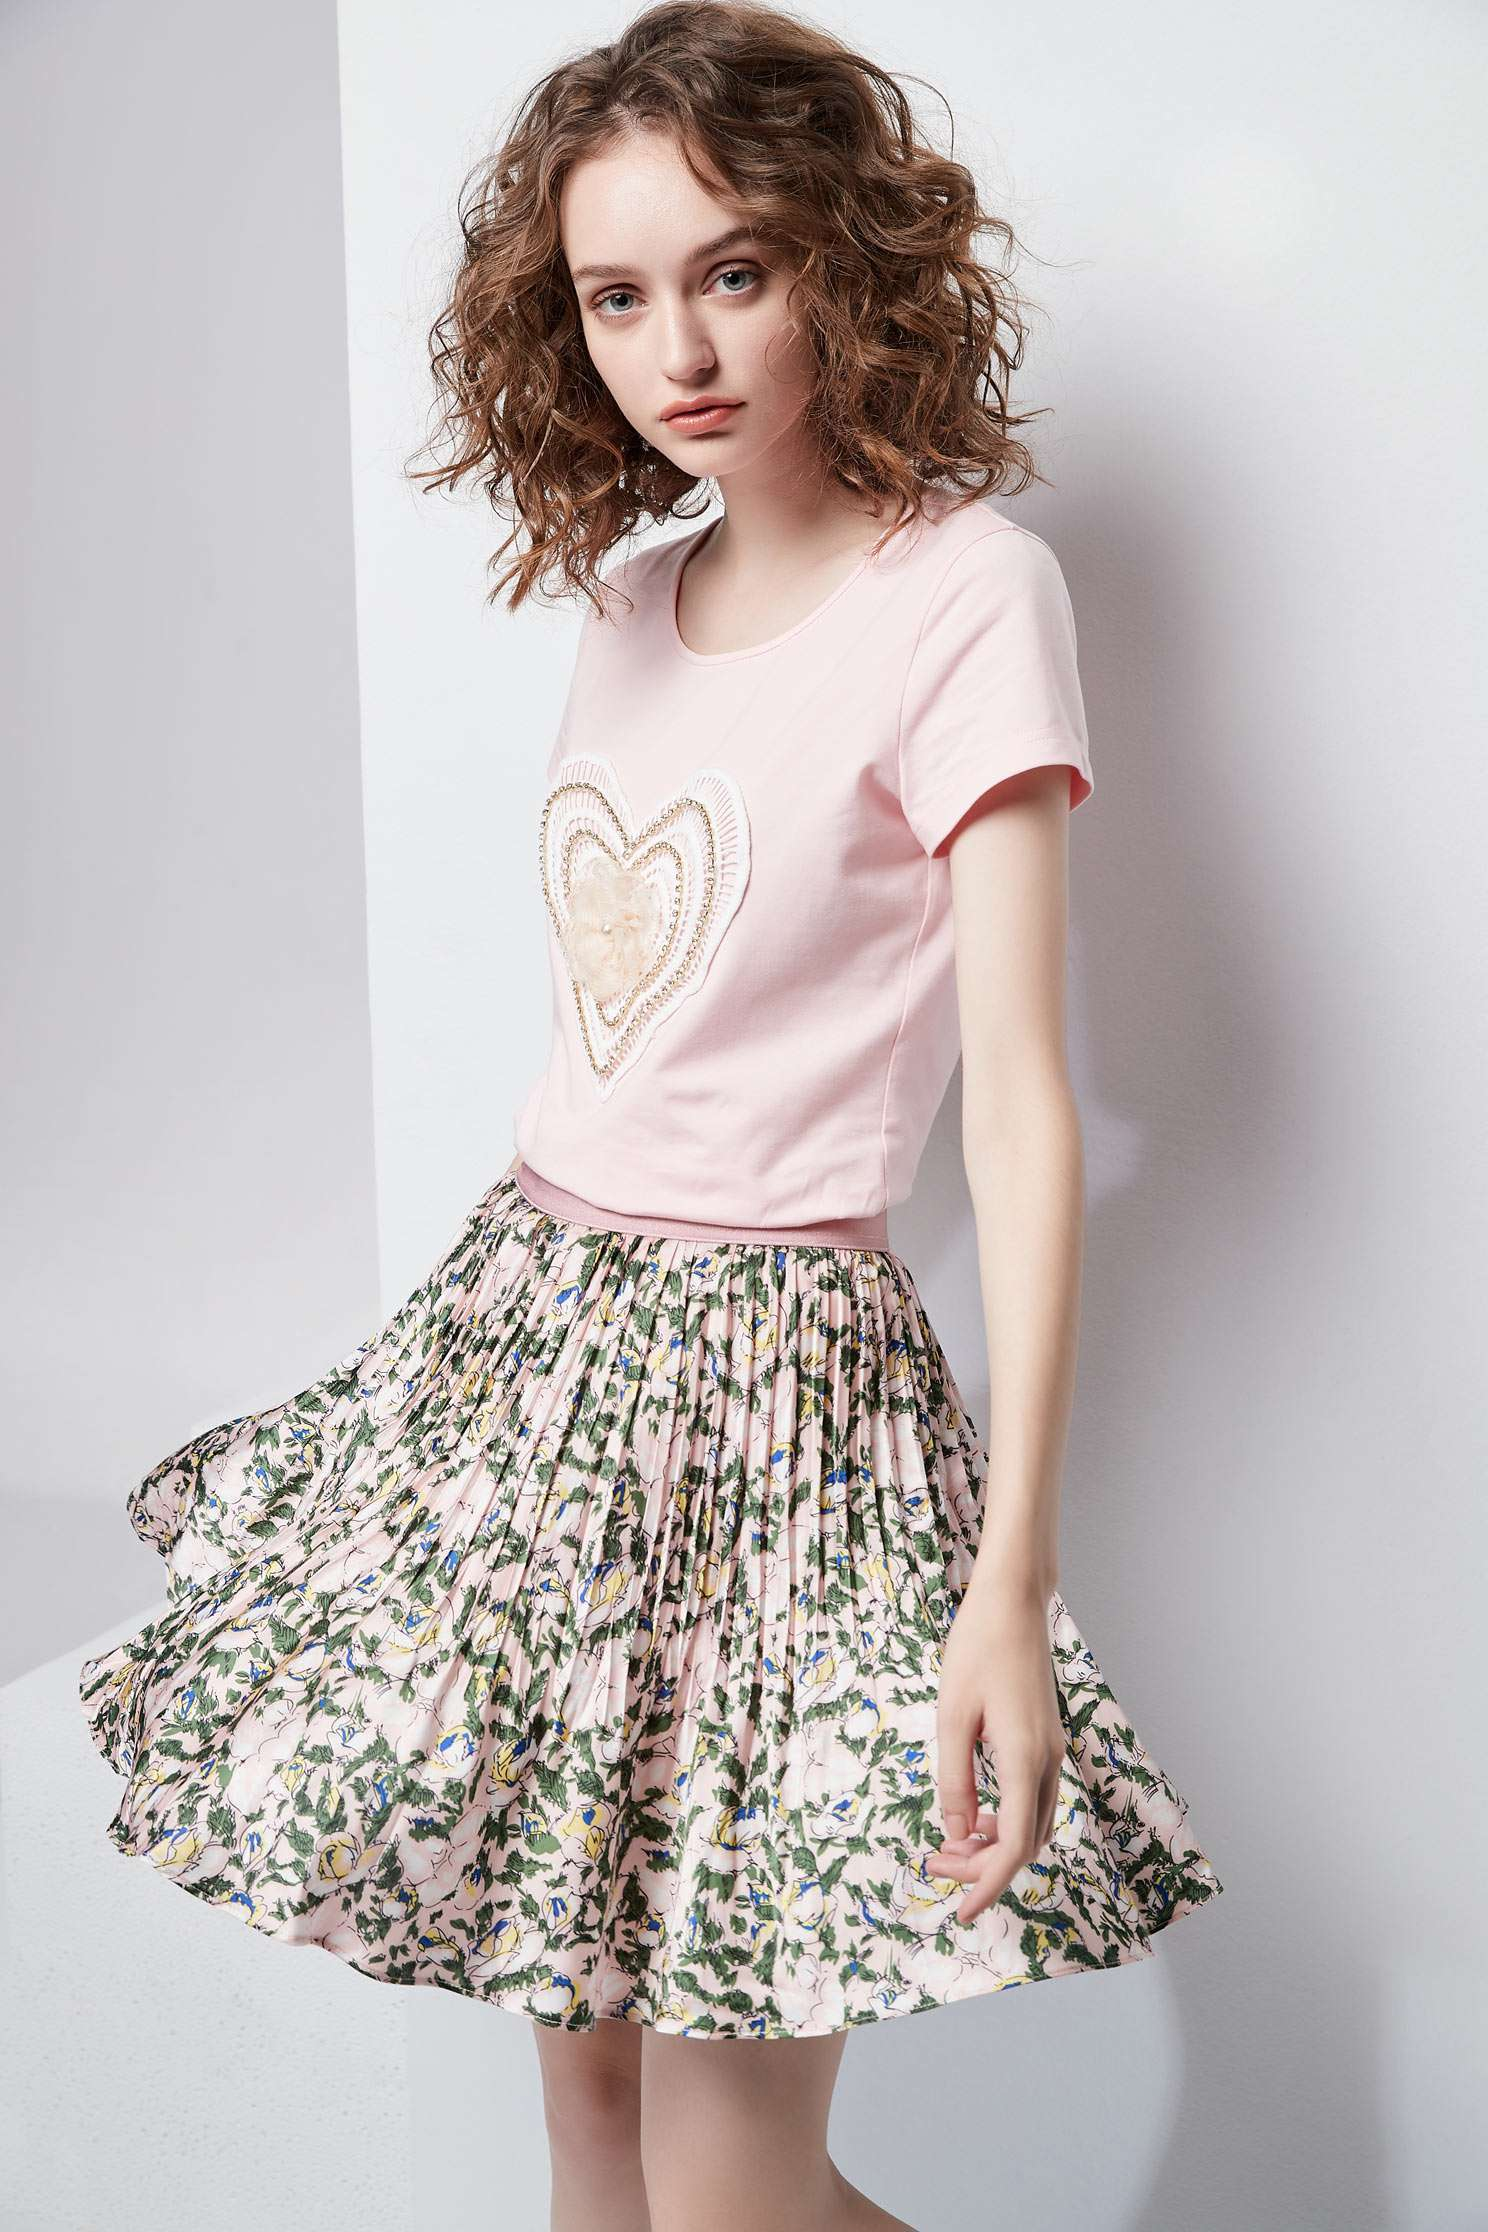 Classic flowery skorts,shorts,pants,culottes